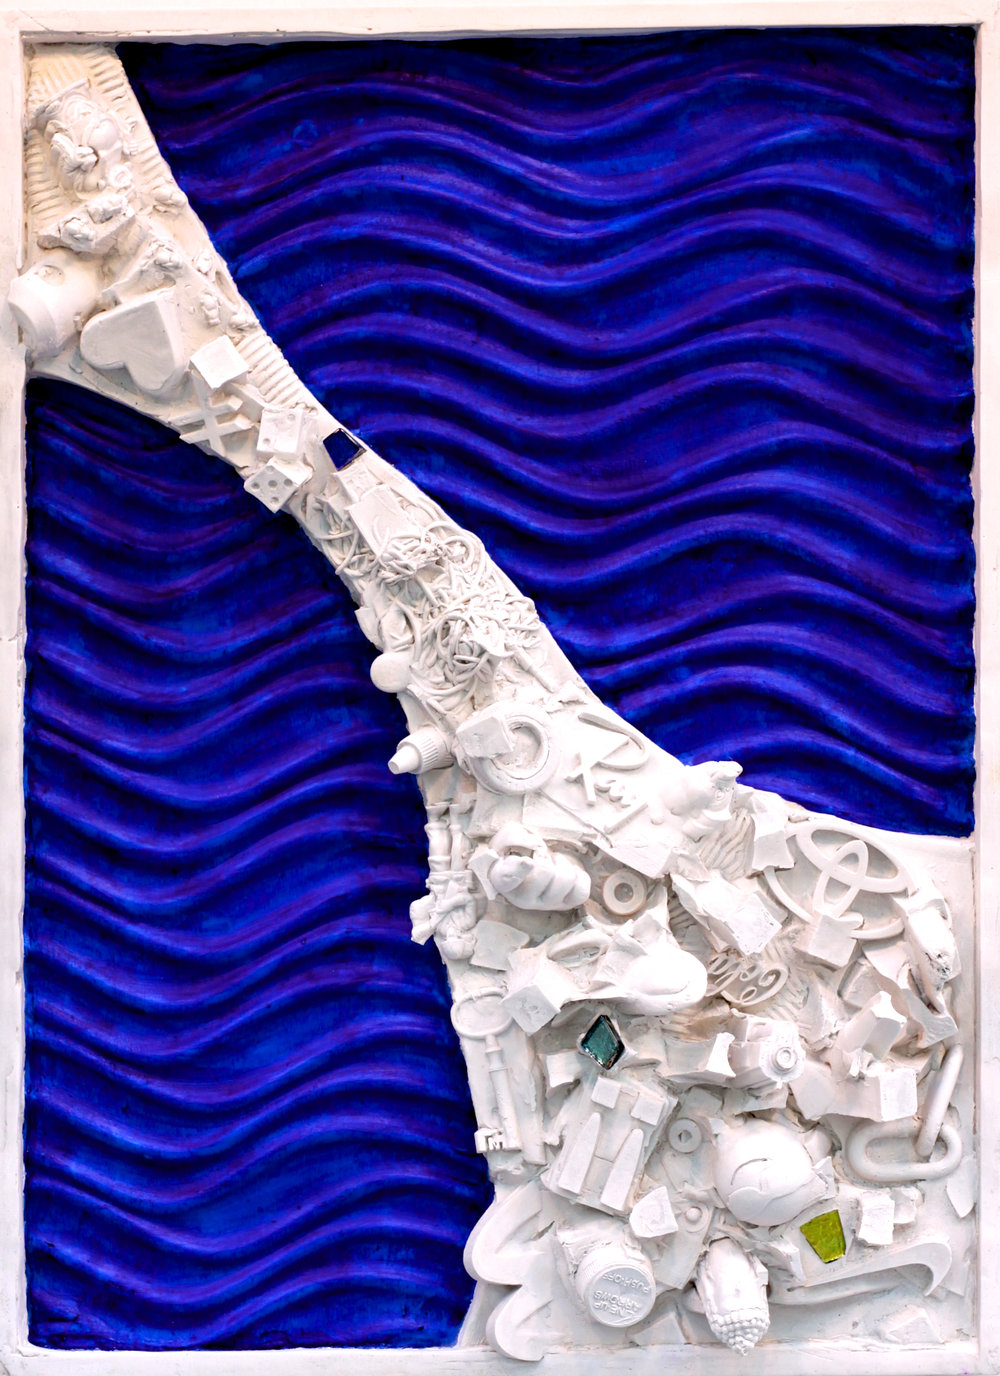 "(C)scape #47, Rhizome #1, 23"" x 15"", plaster, carrara marble, oil paint, glass."